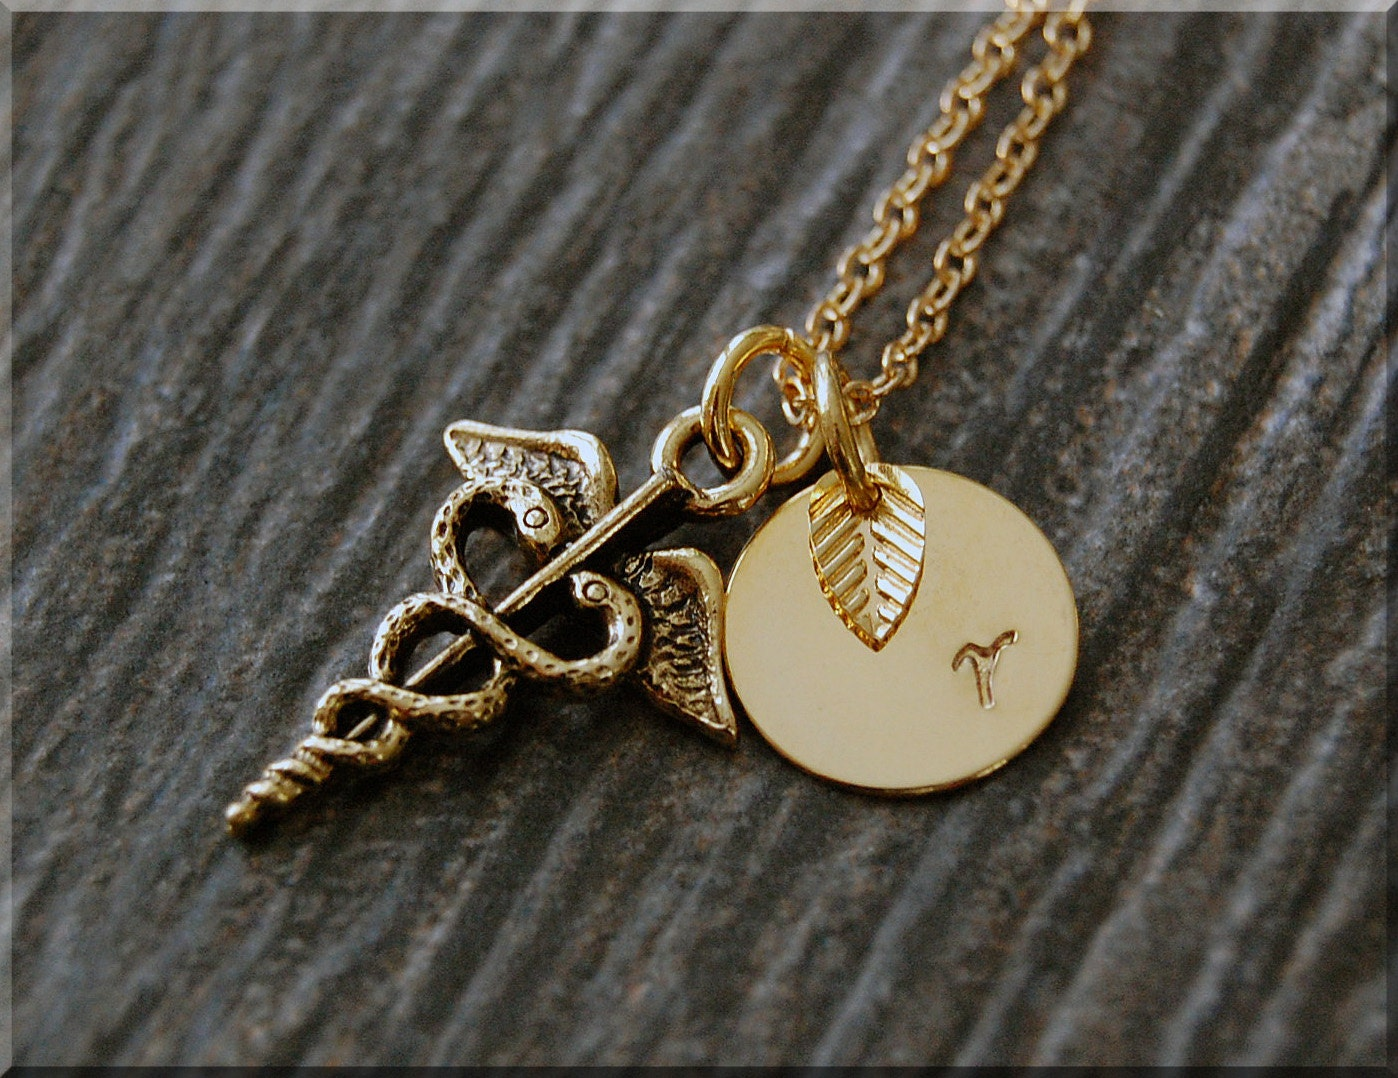 Gold caduceus charm necklace initial charm necklace zoom mozeypictures Image collections